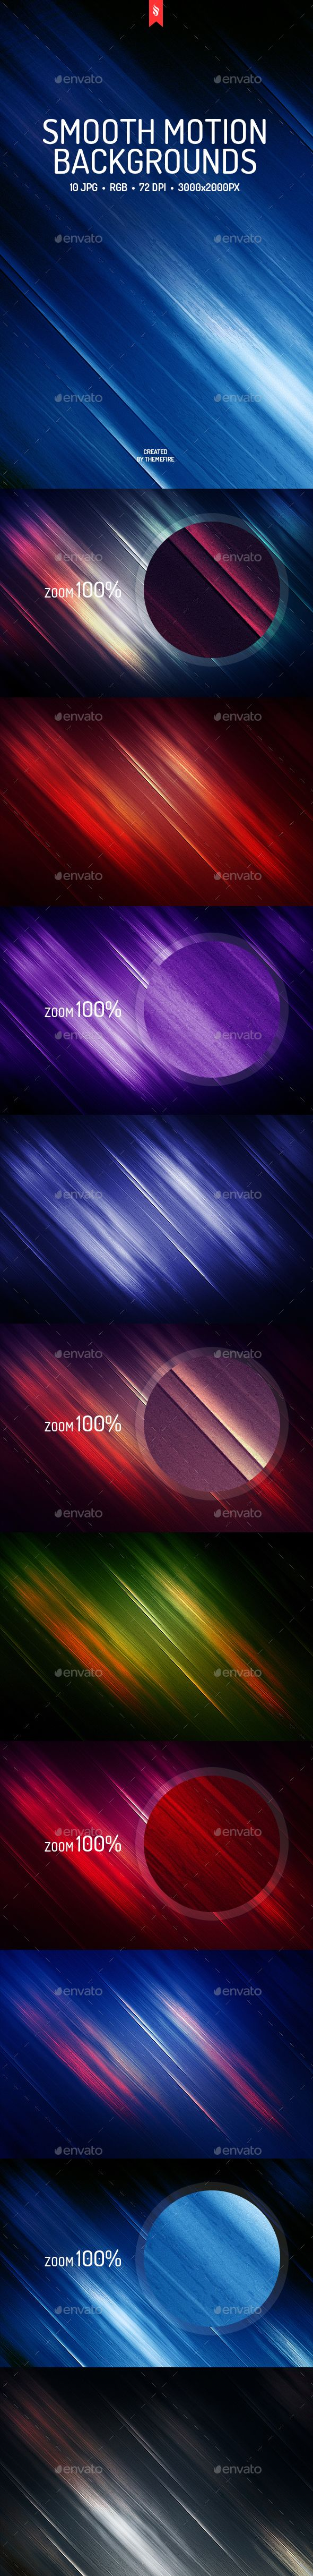 Smooth Motion Backgrounds. Download here: http://graphicriver.net/item/smooth-motion-backgrounds/16128063?ref=ksioks